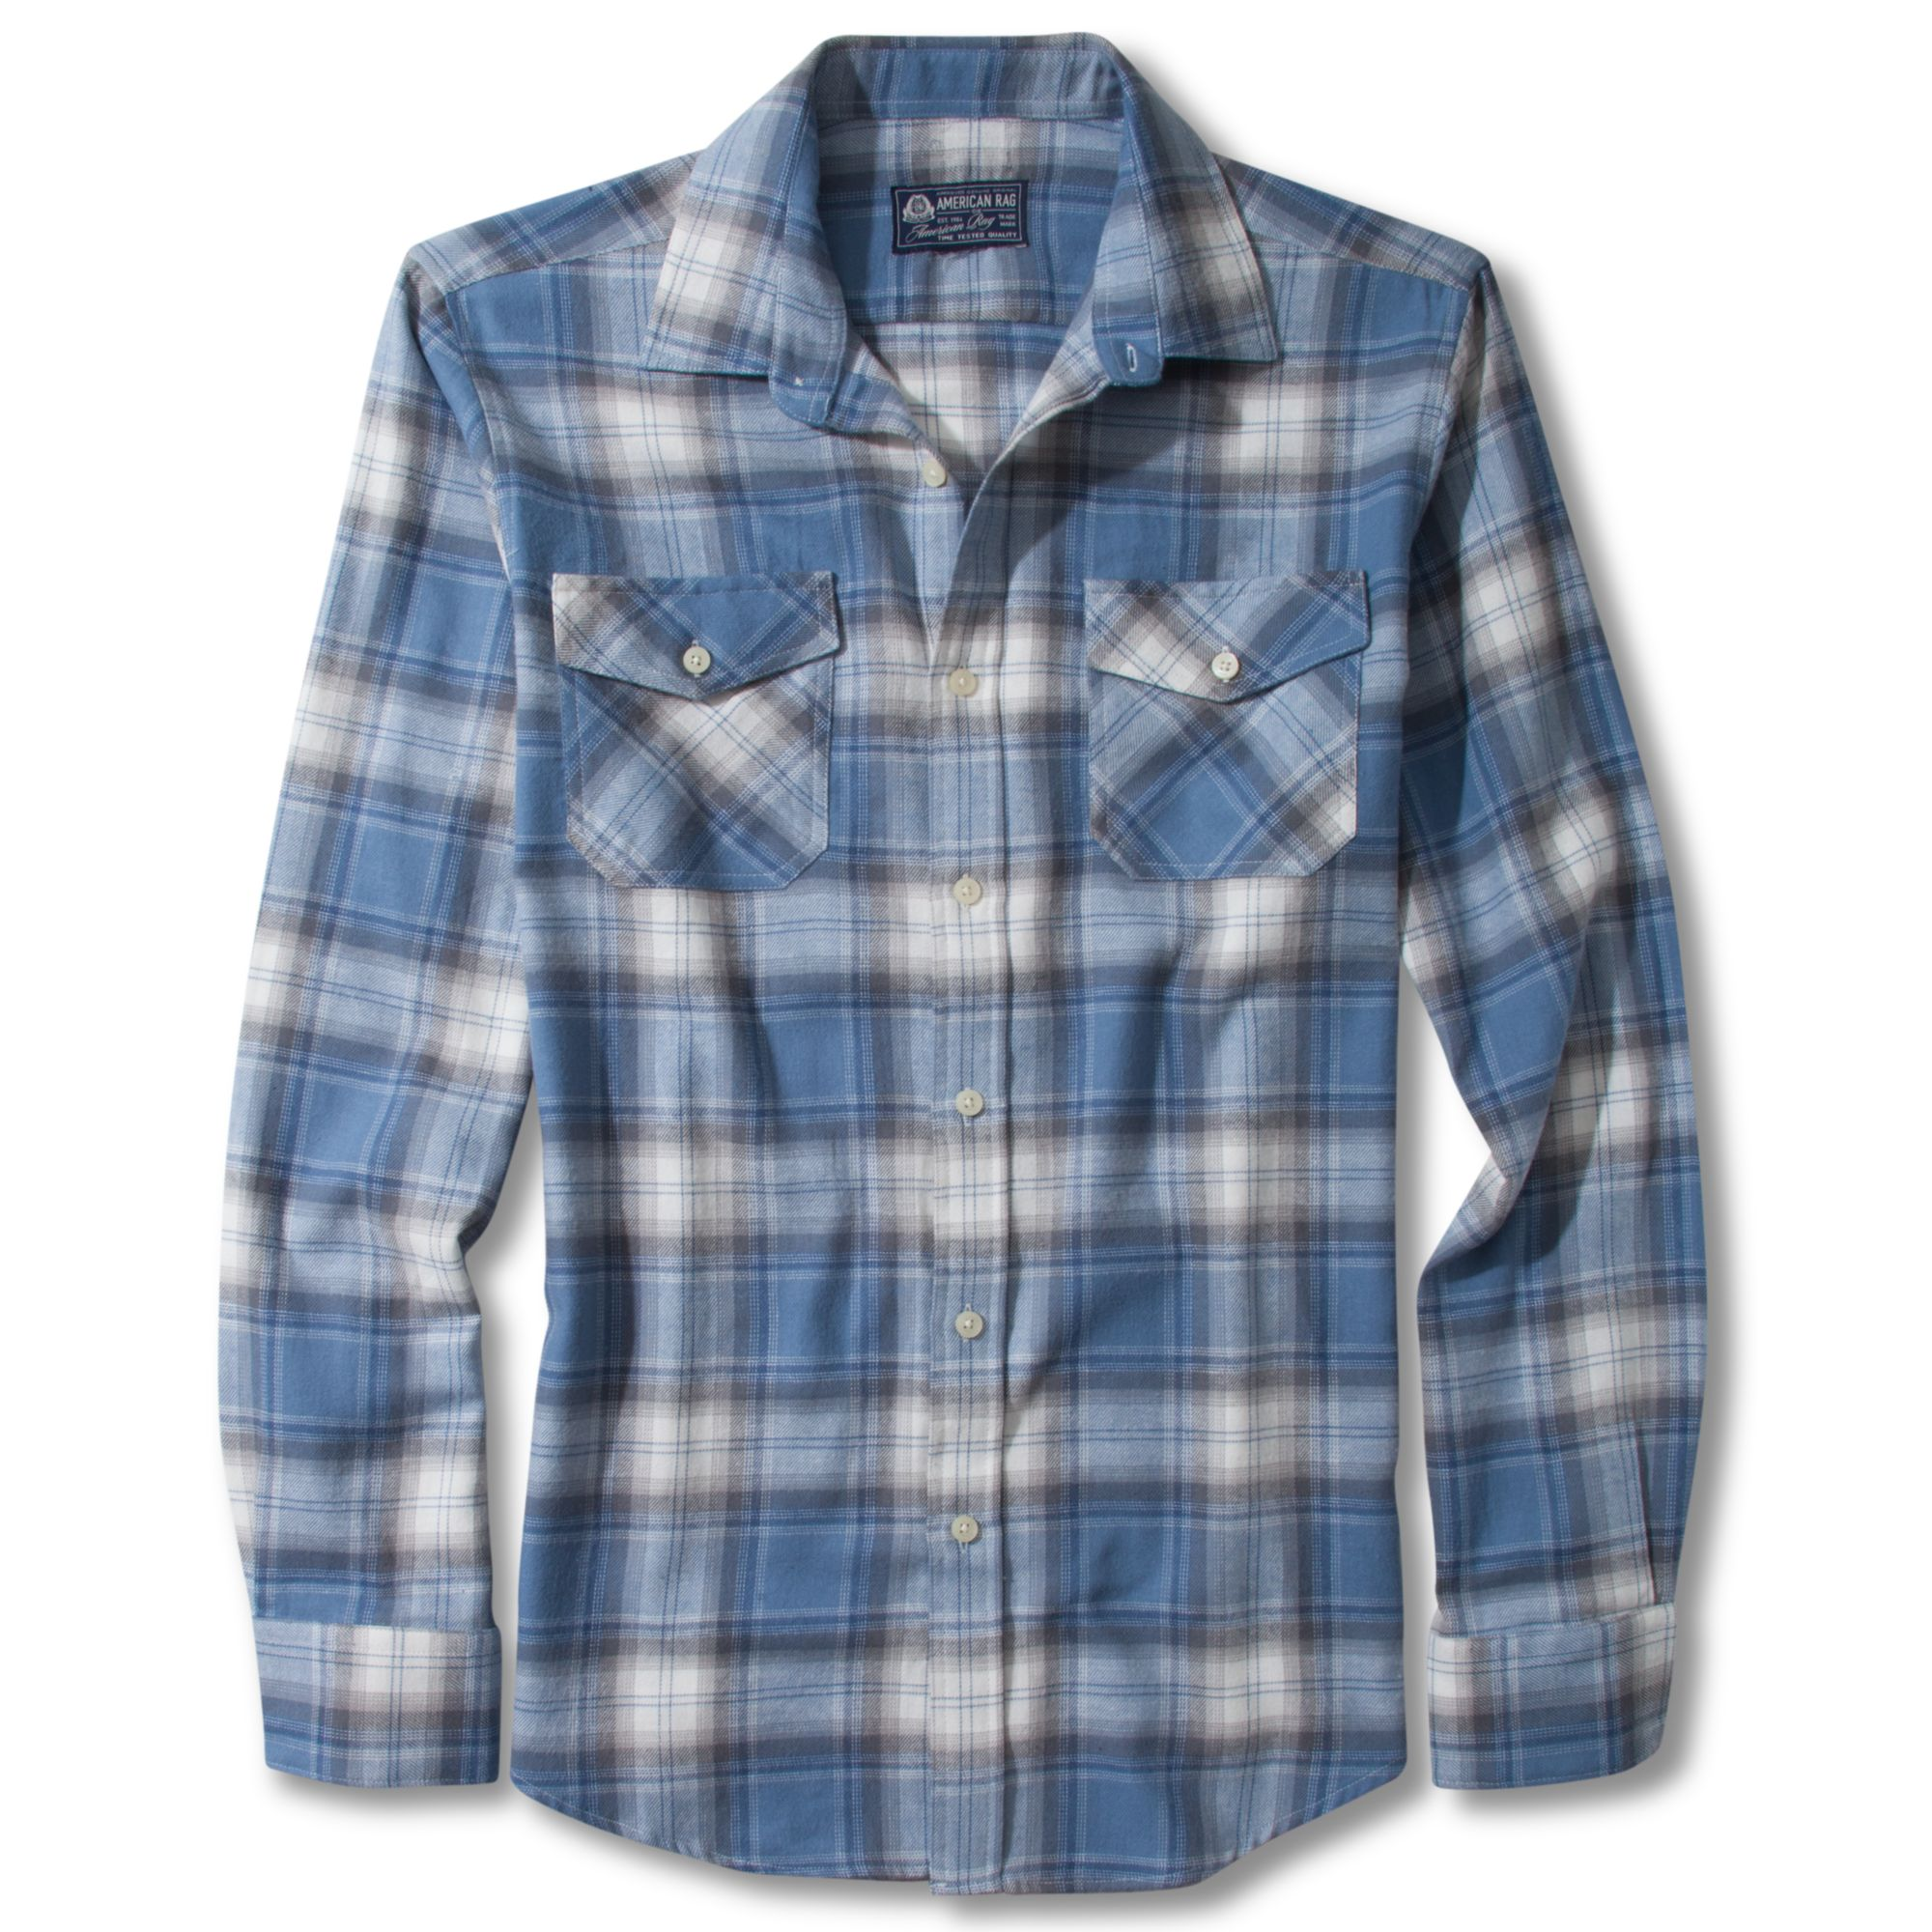 Lyst American Rag Flannel Shirt In Blue For Men